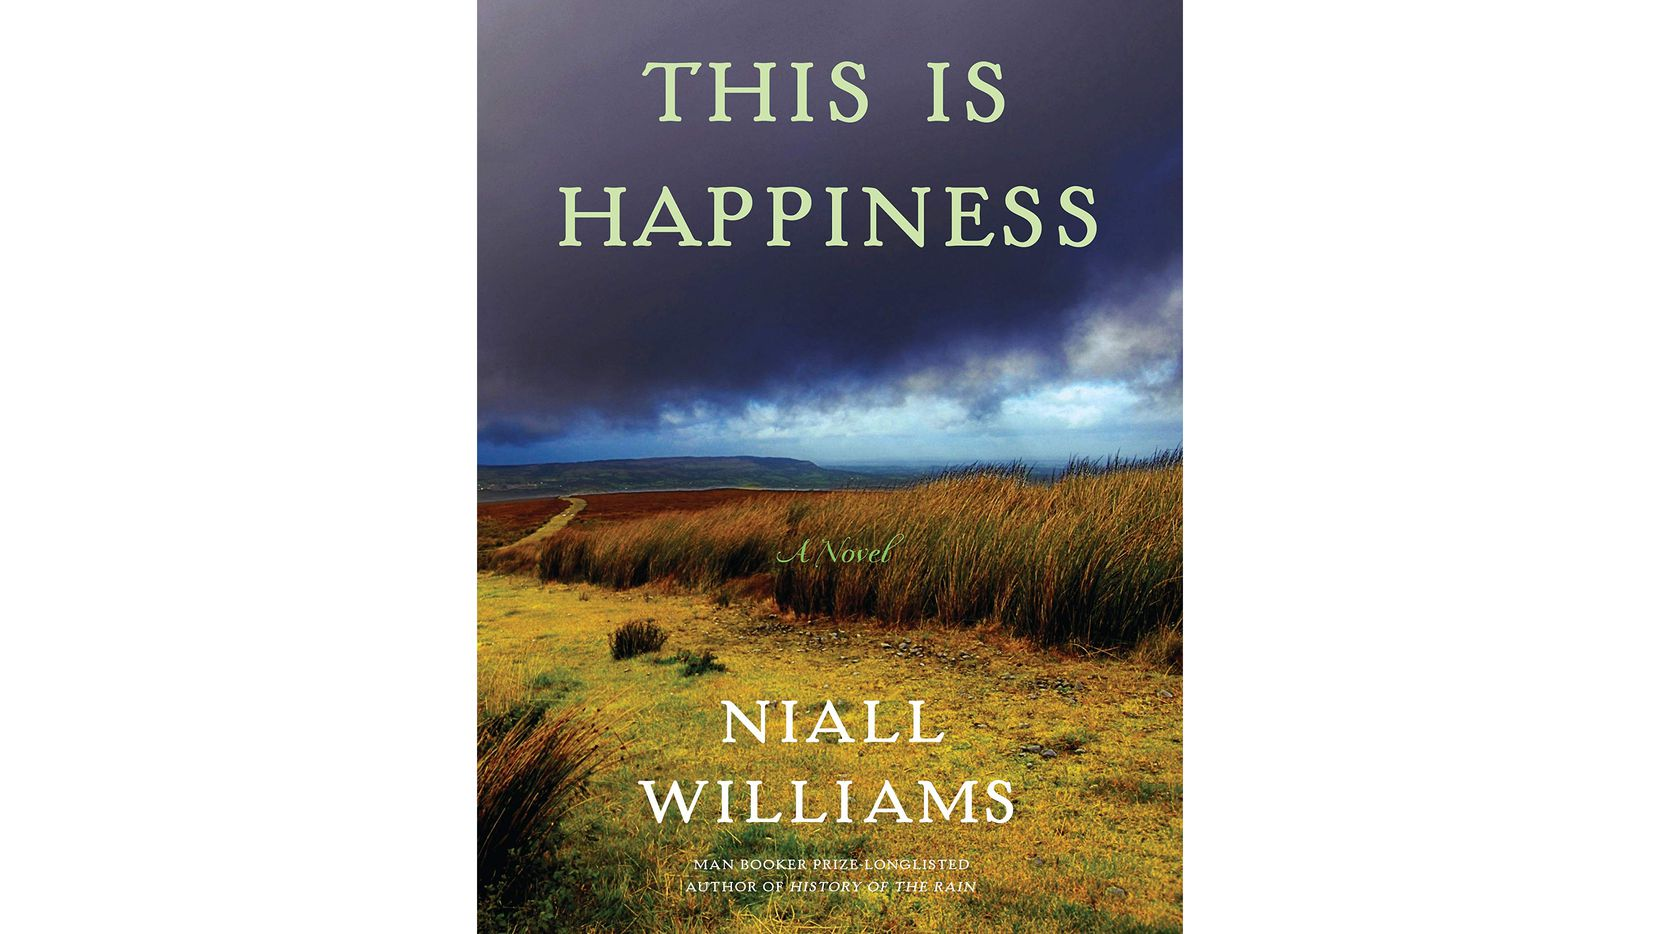 """Niall Williams writes a loving tribute to a bygone Ireland in """"This Is Happiness."""""""